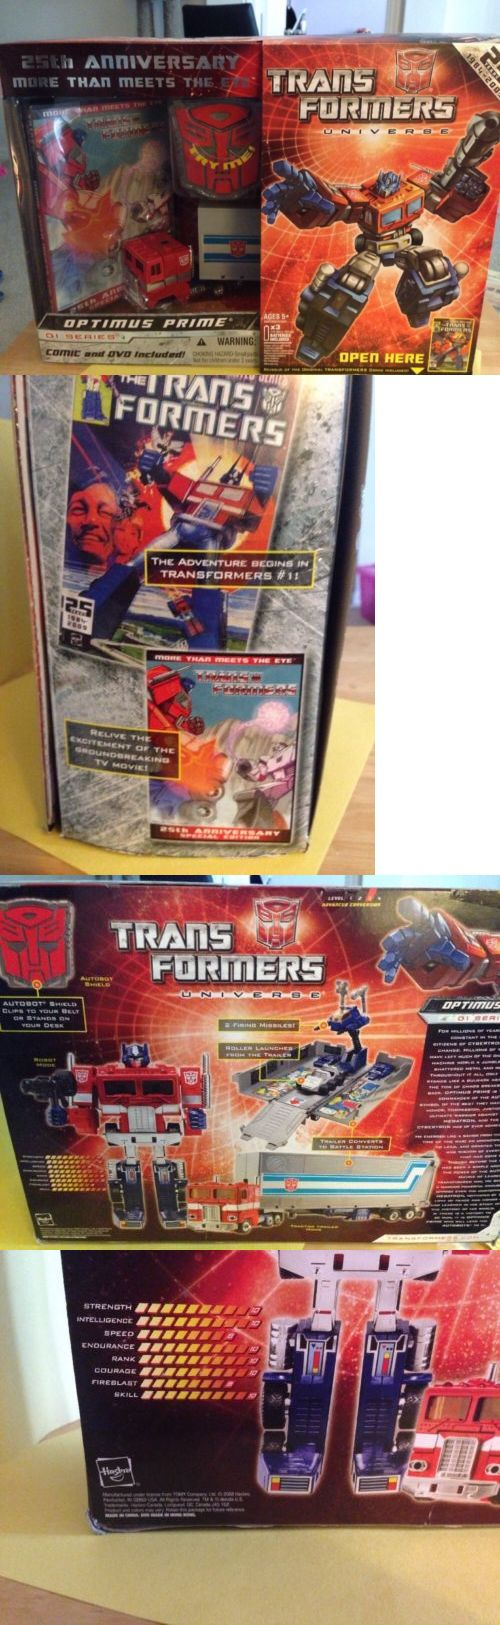 Transformers and Robots 83732: Transformers G1 Optimus Prime 25Th Anniversary Figure Dvd Comic Hasbro Niob -> BUY IT NOW ONLY: $80 on eBay!